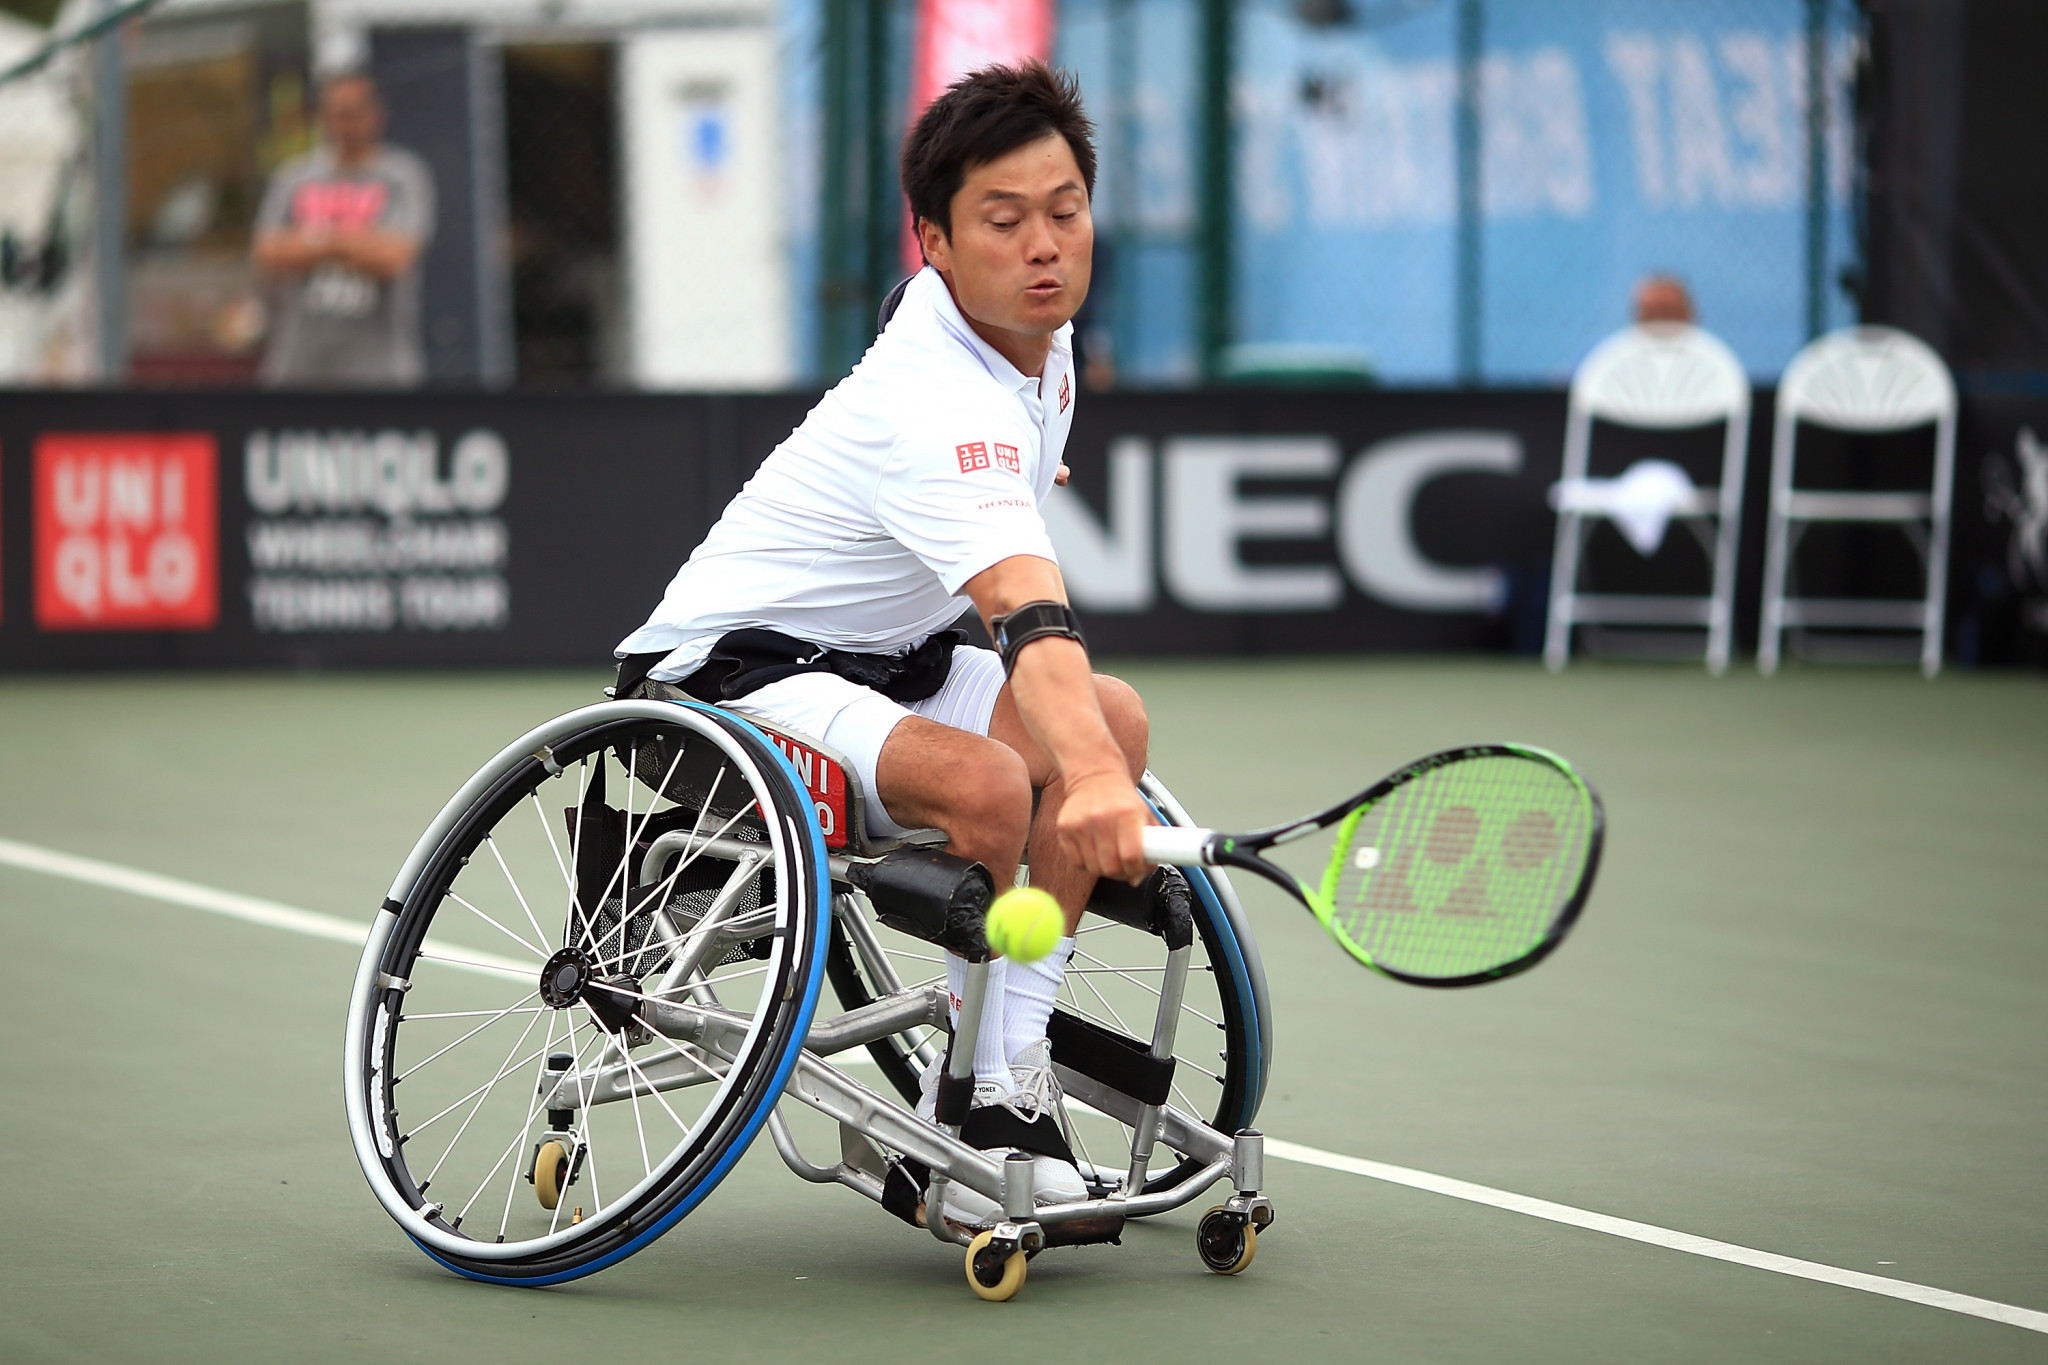 World number one Shingo Kunieda of Japan is through to the men's singles quarter-finals ©Getty Images